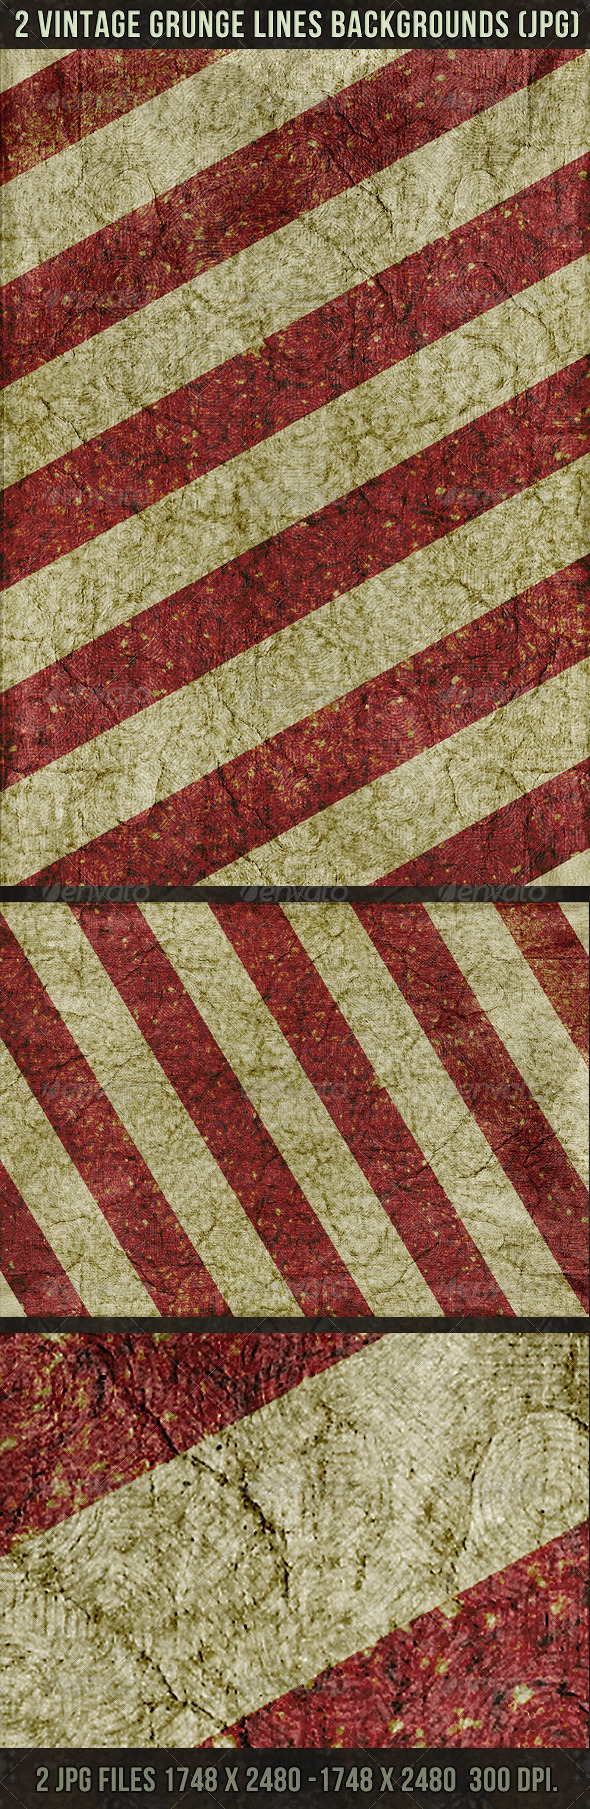 2 Vintage Lines Backgrounds - Urban Backgrounds